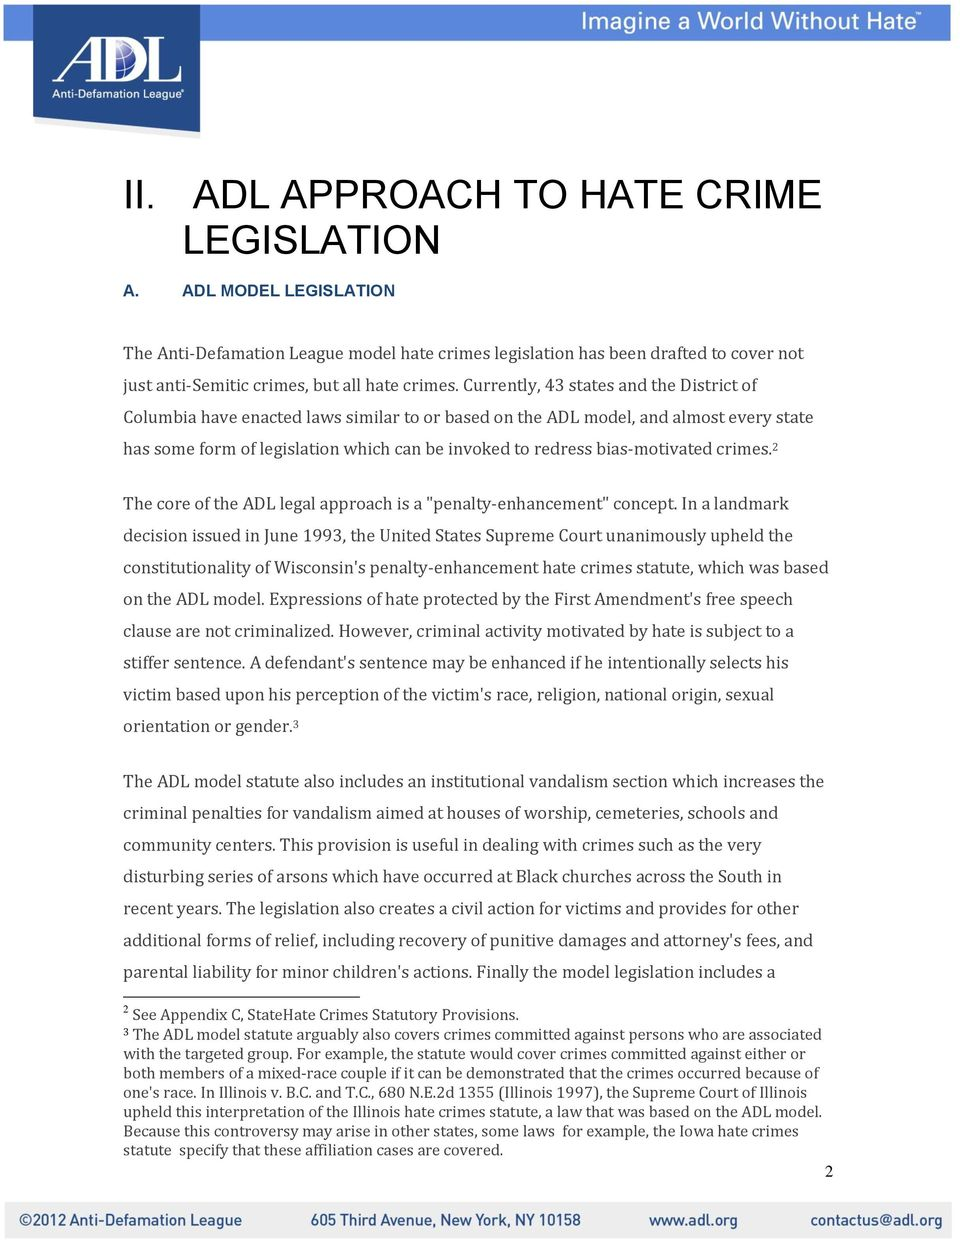 Currently, 43 states and the District of Columbia have enacted laws similar to or based on the ADL model, and almost every state has some form of legislation which can be invoked to redress